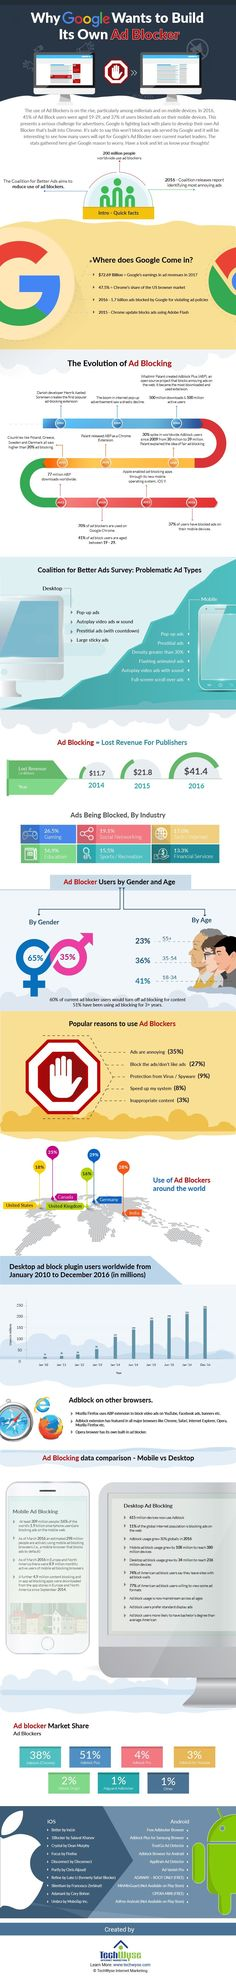 Why Google Wants to Build Its Own Ads-Blocker - infographic / Digital Information World